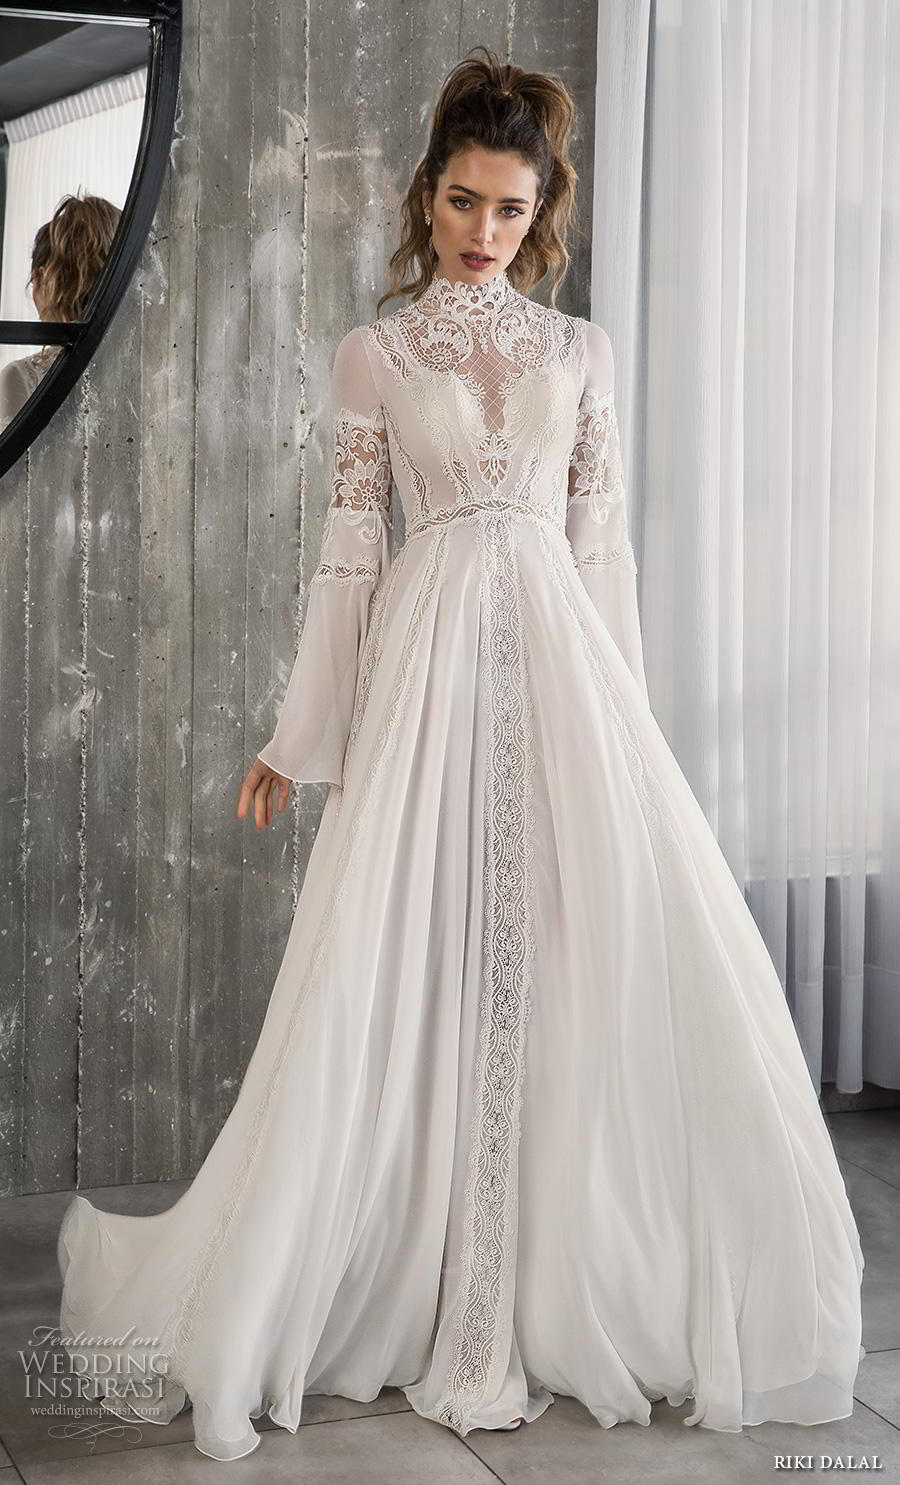 riki dalal 2018 glamour bridal long bell sleeves high neck heavily embellished bodice romantic bohemian a line wedding dress cross strap back sweep train (4) mv